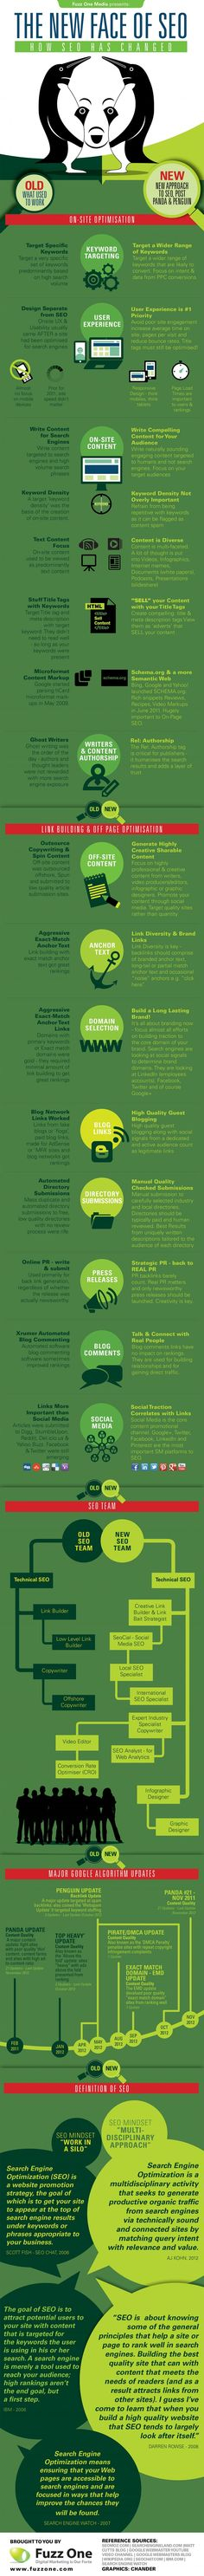 How SEO Has Changed in 2012 #infographic